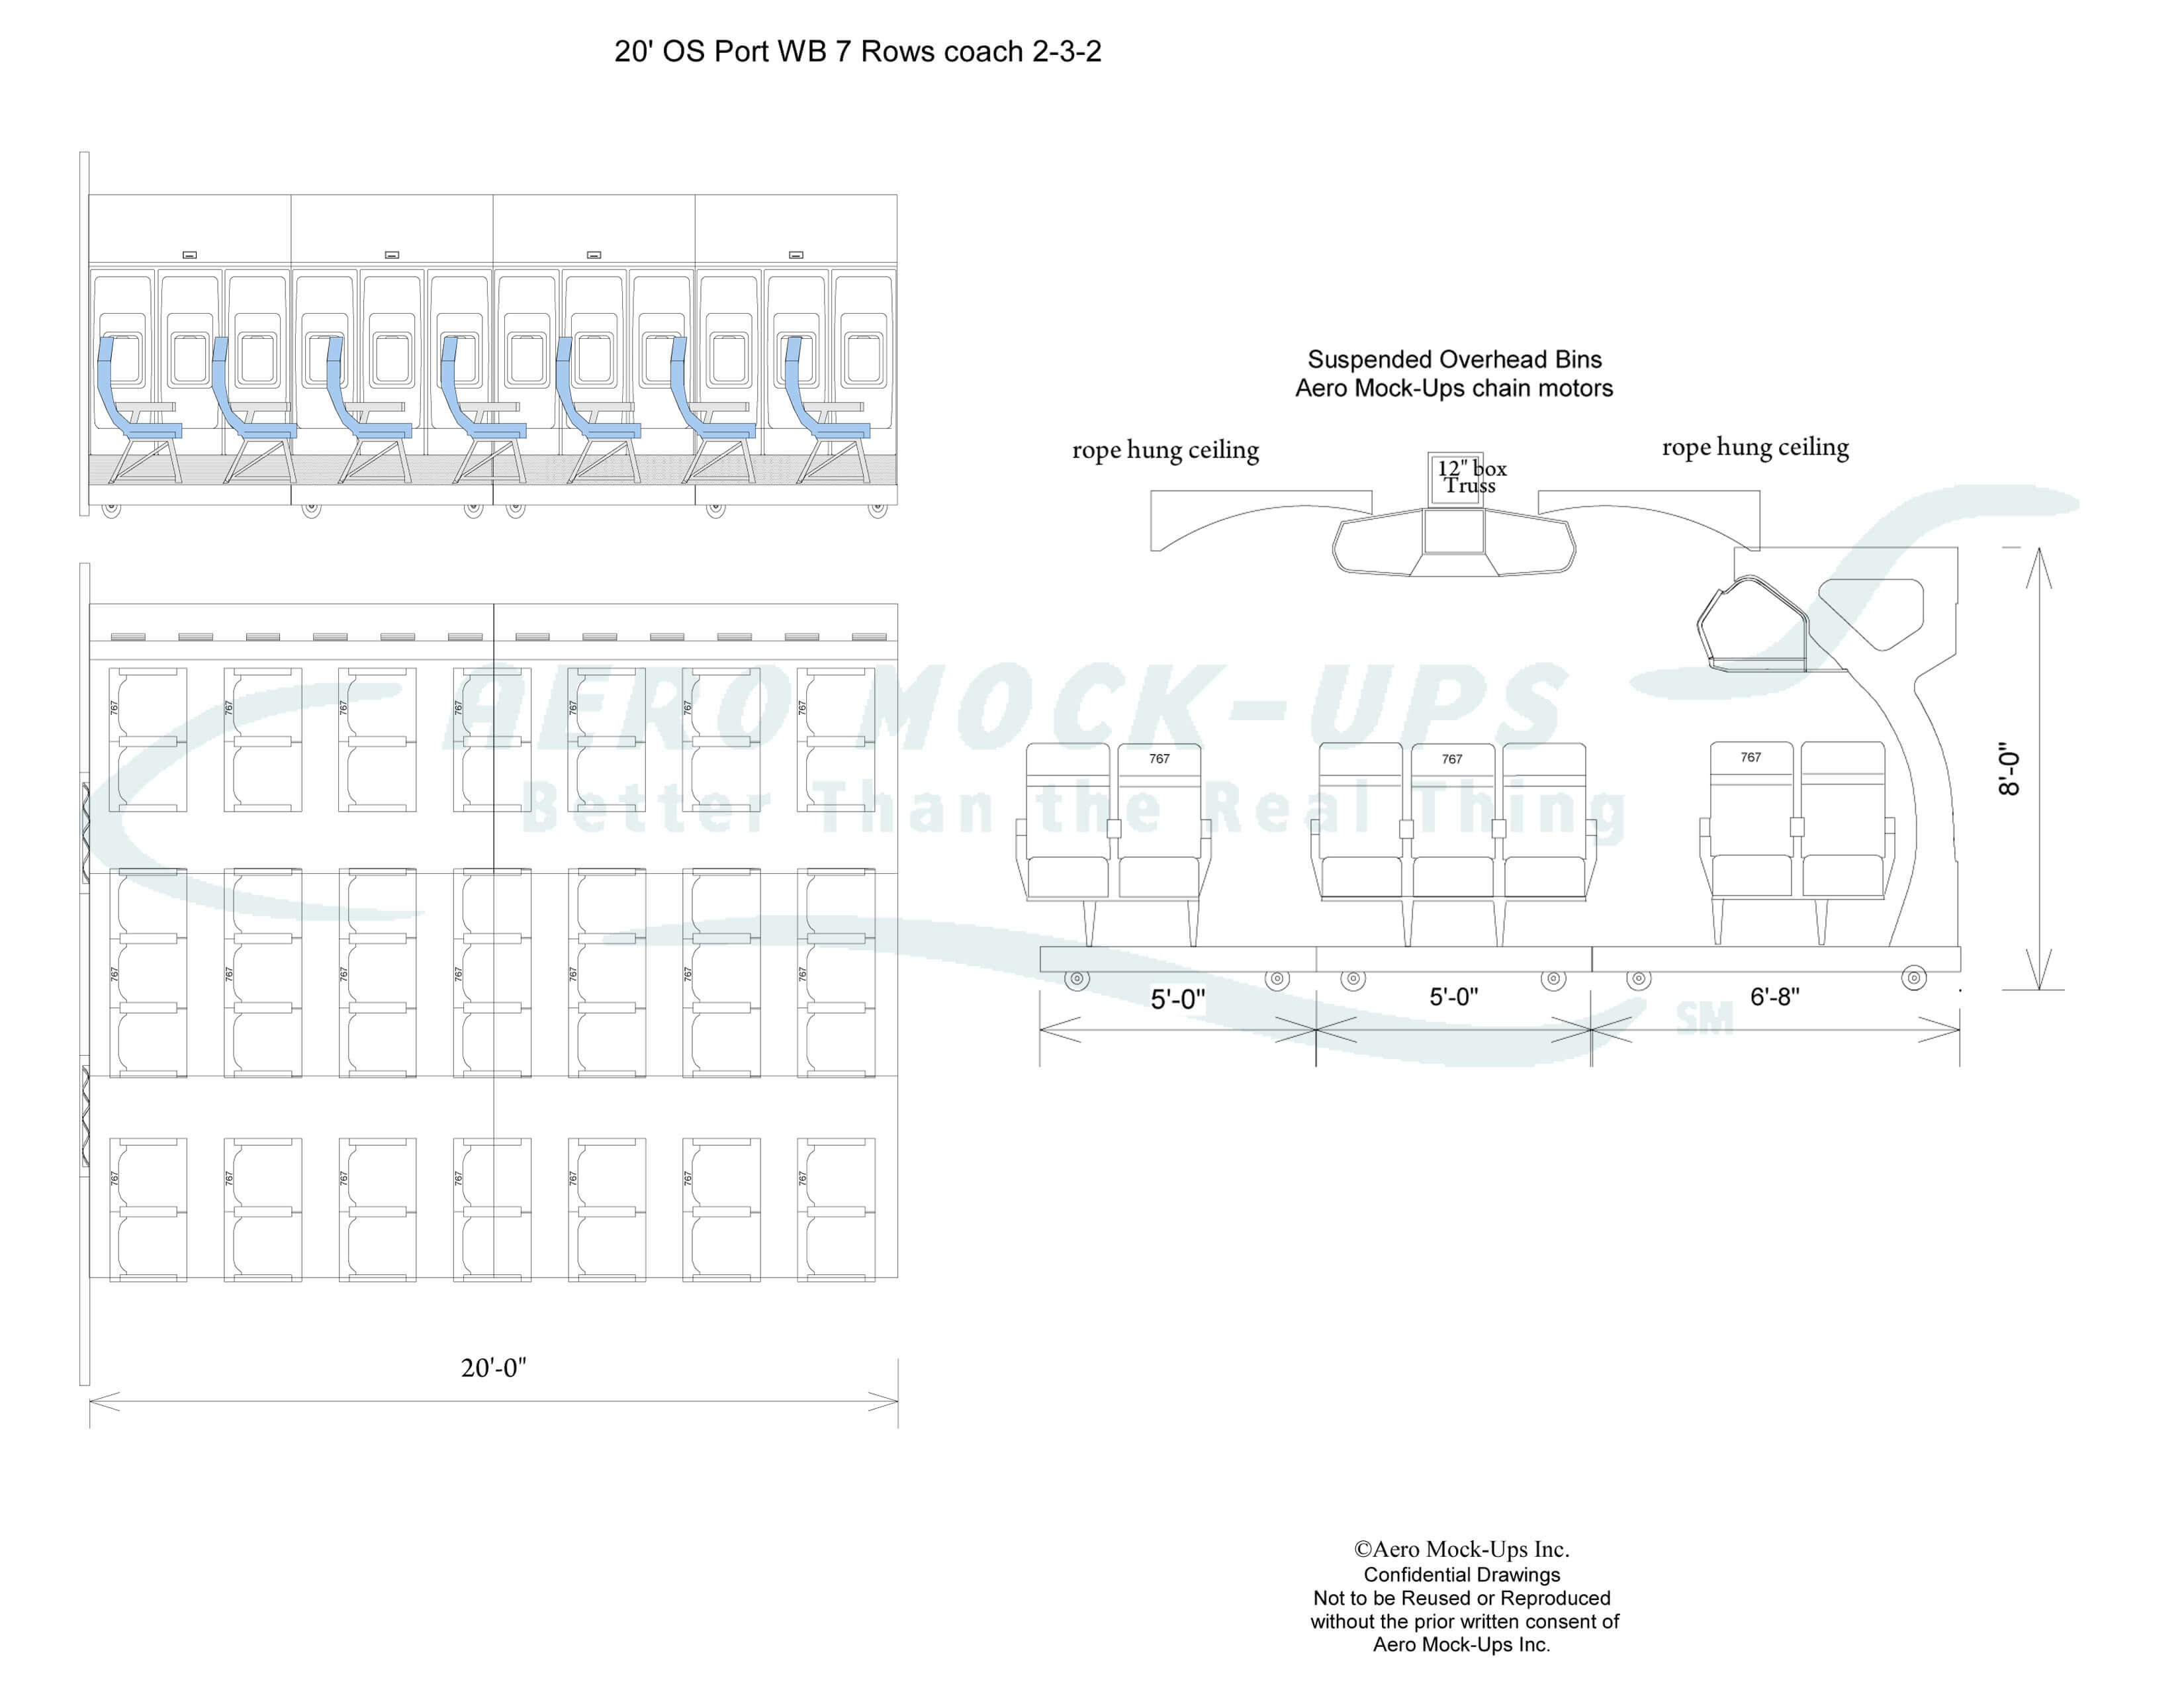 Aero mock ups aviation sets prop rentals set up guide aero roll 20 osp wb 7 x 2 3 2 wc with wb ccuart Gallery